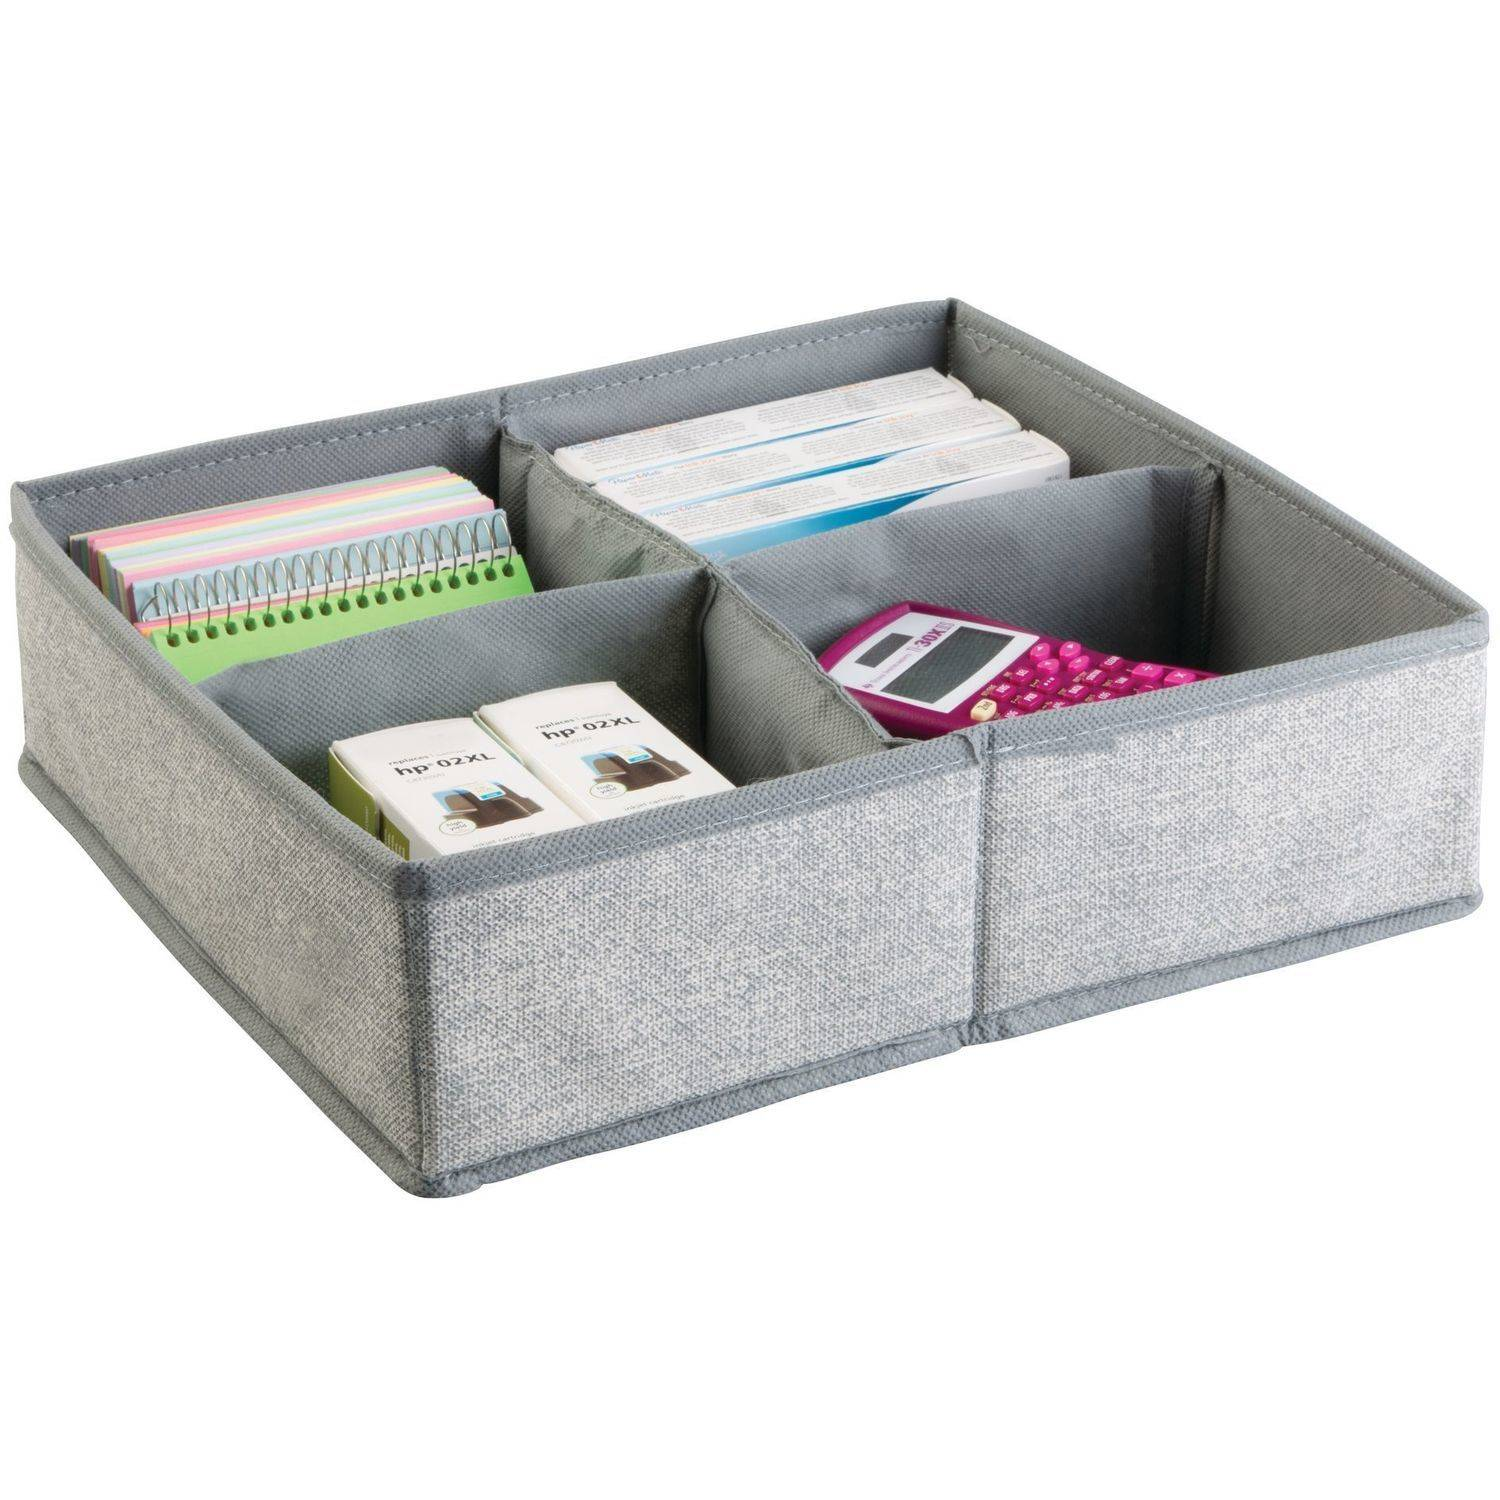 InterDesign Aldo Drawer Organizer, 4S, Large, Grey